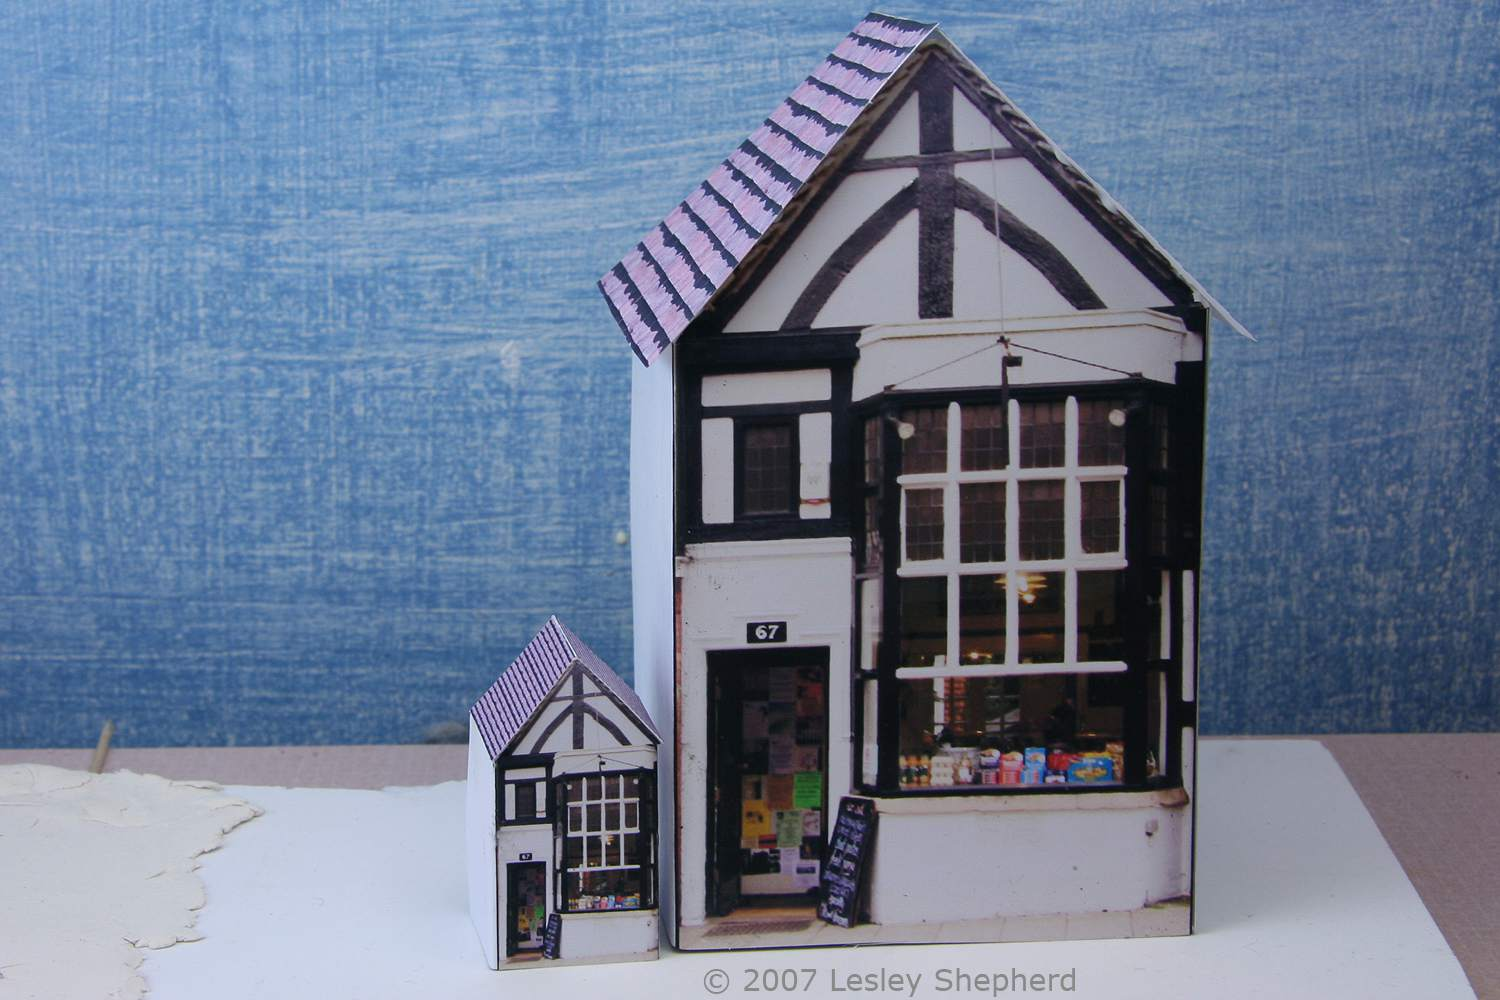 A 1:144 scale printable miniature shop next to one in 1:48 scale.